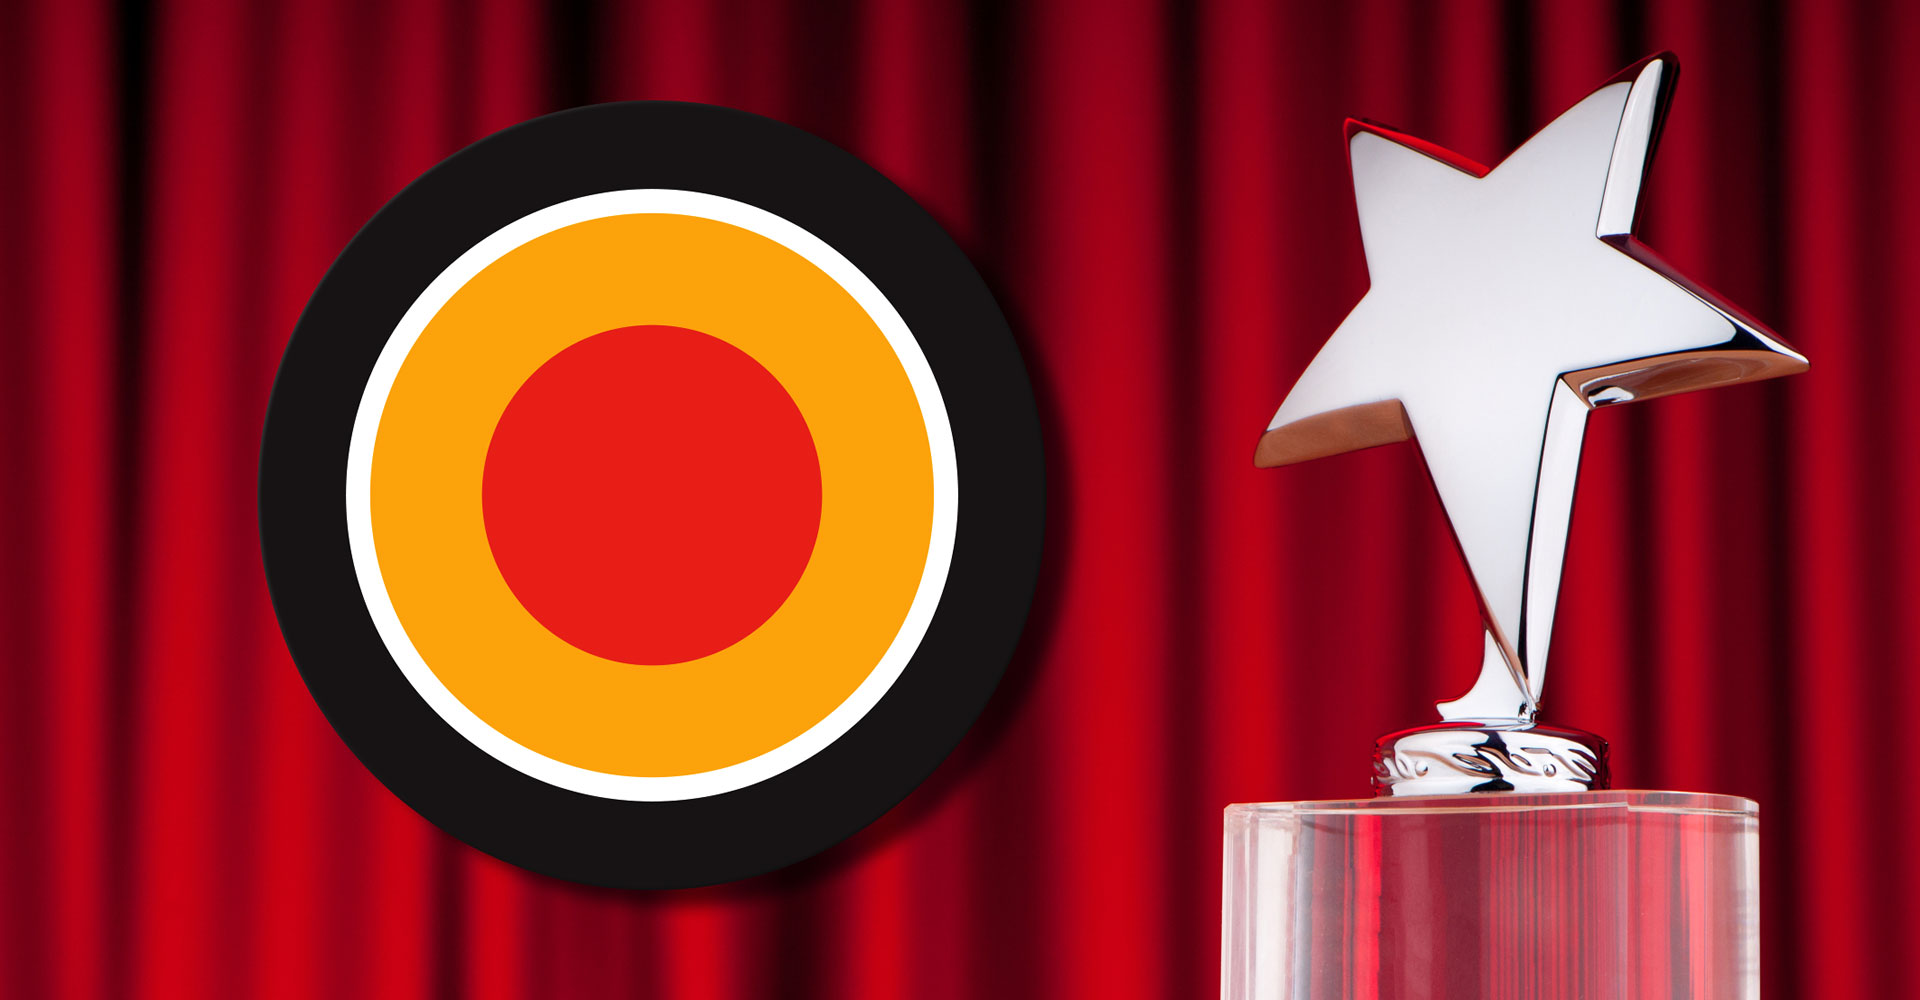 On-Target! Makreting | Digital Marketers In Houston | On-Target! Agency Nominated for 11 Marketing Achievement Awards